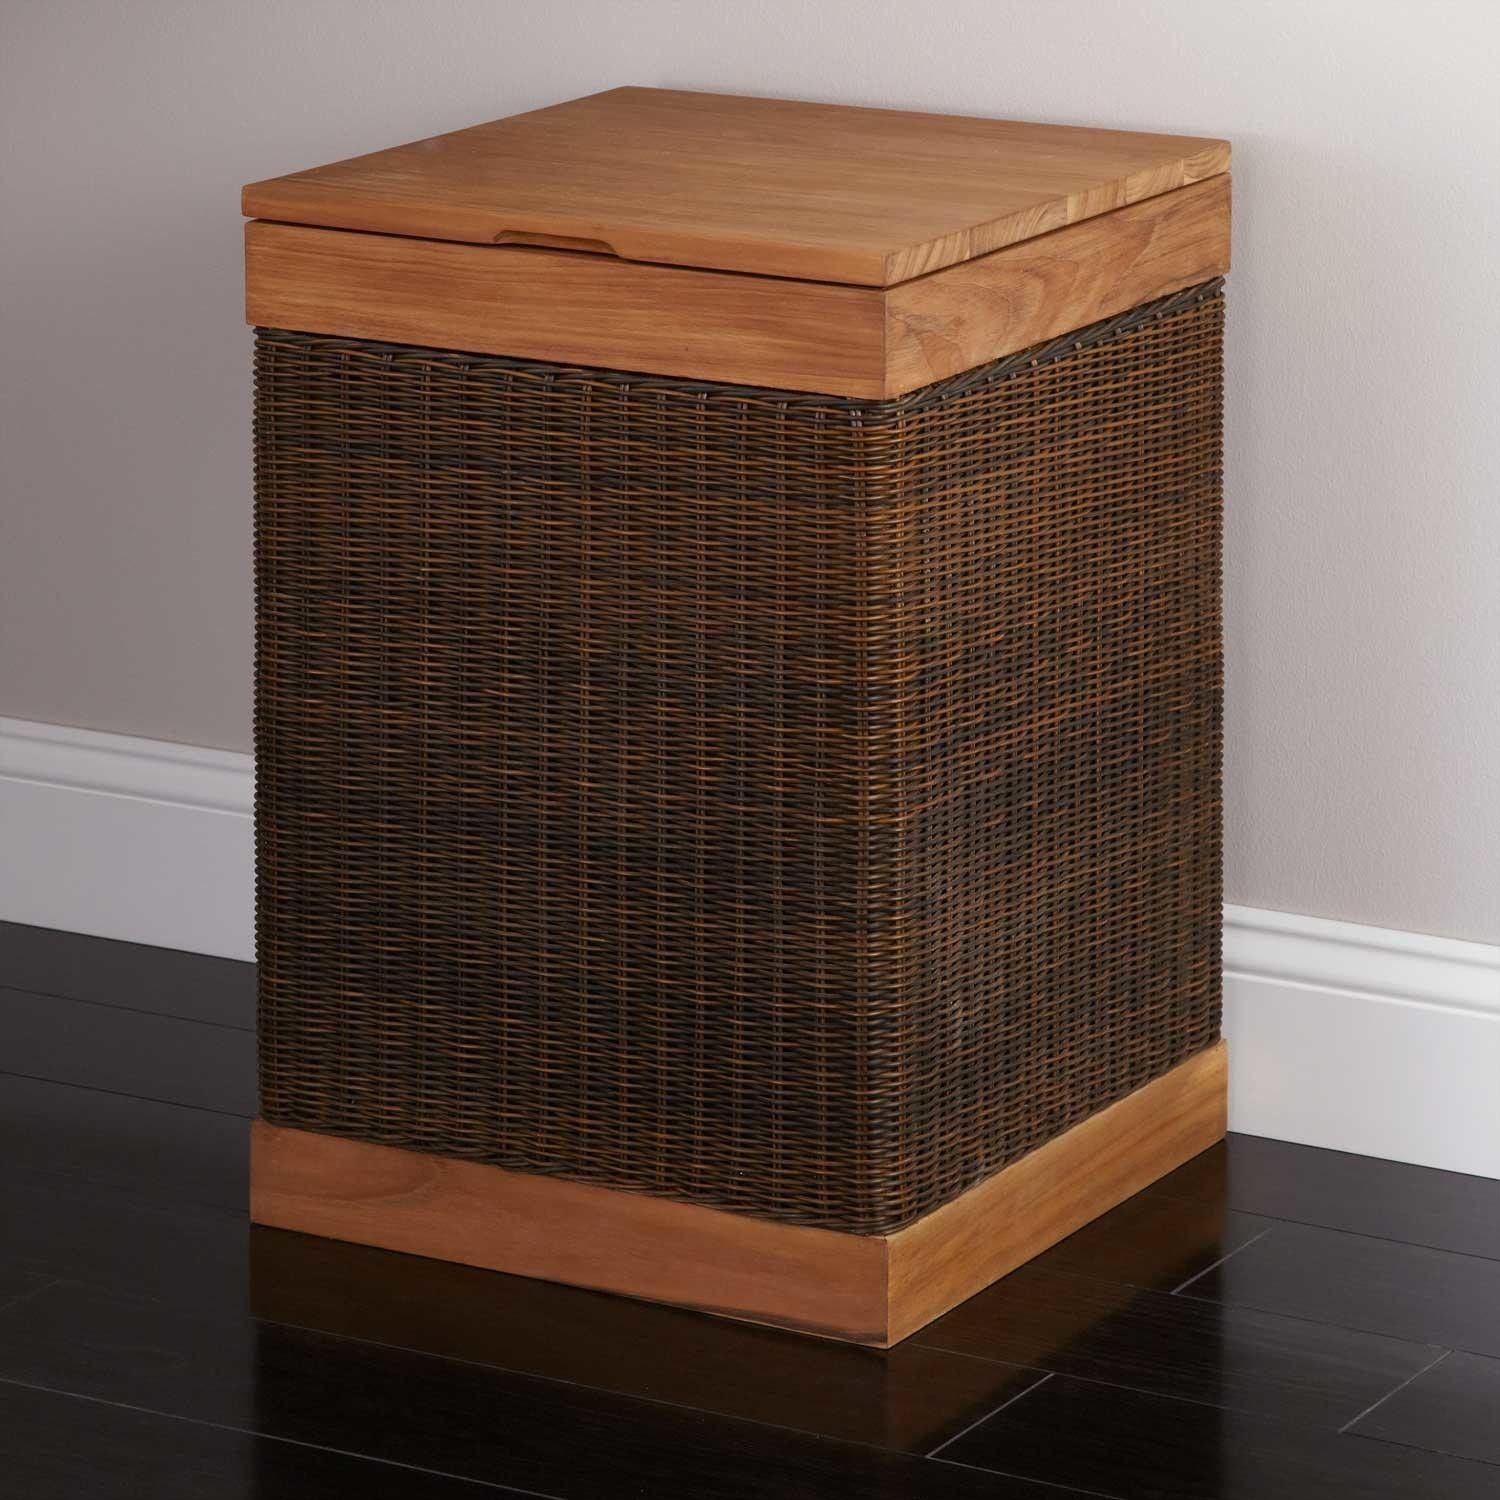 Hinged Lid Teak Clothes Hamper With Liner Hampers Laundry Wooden